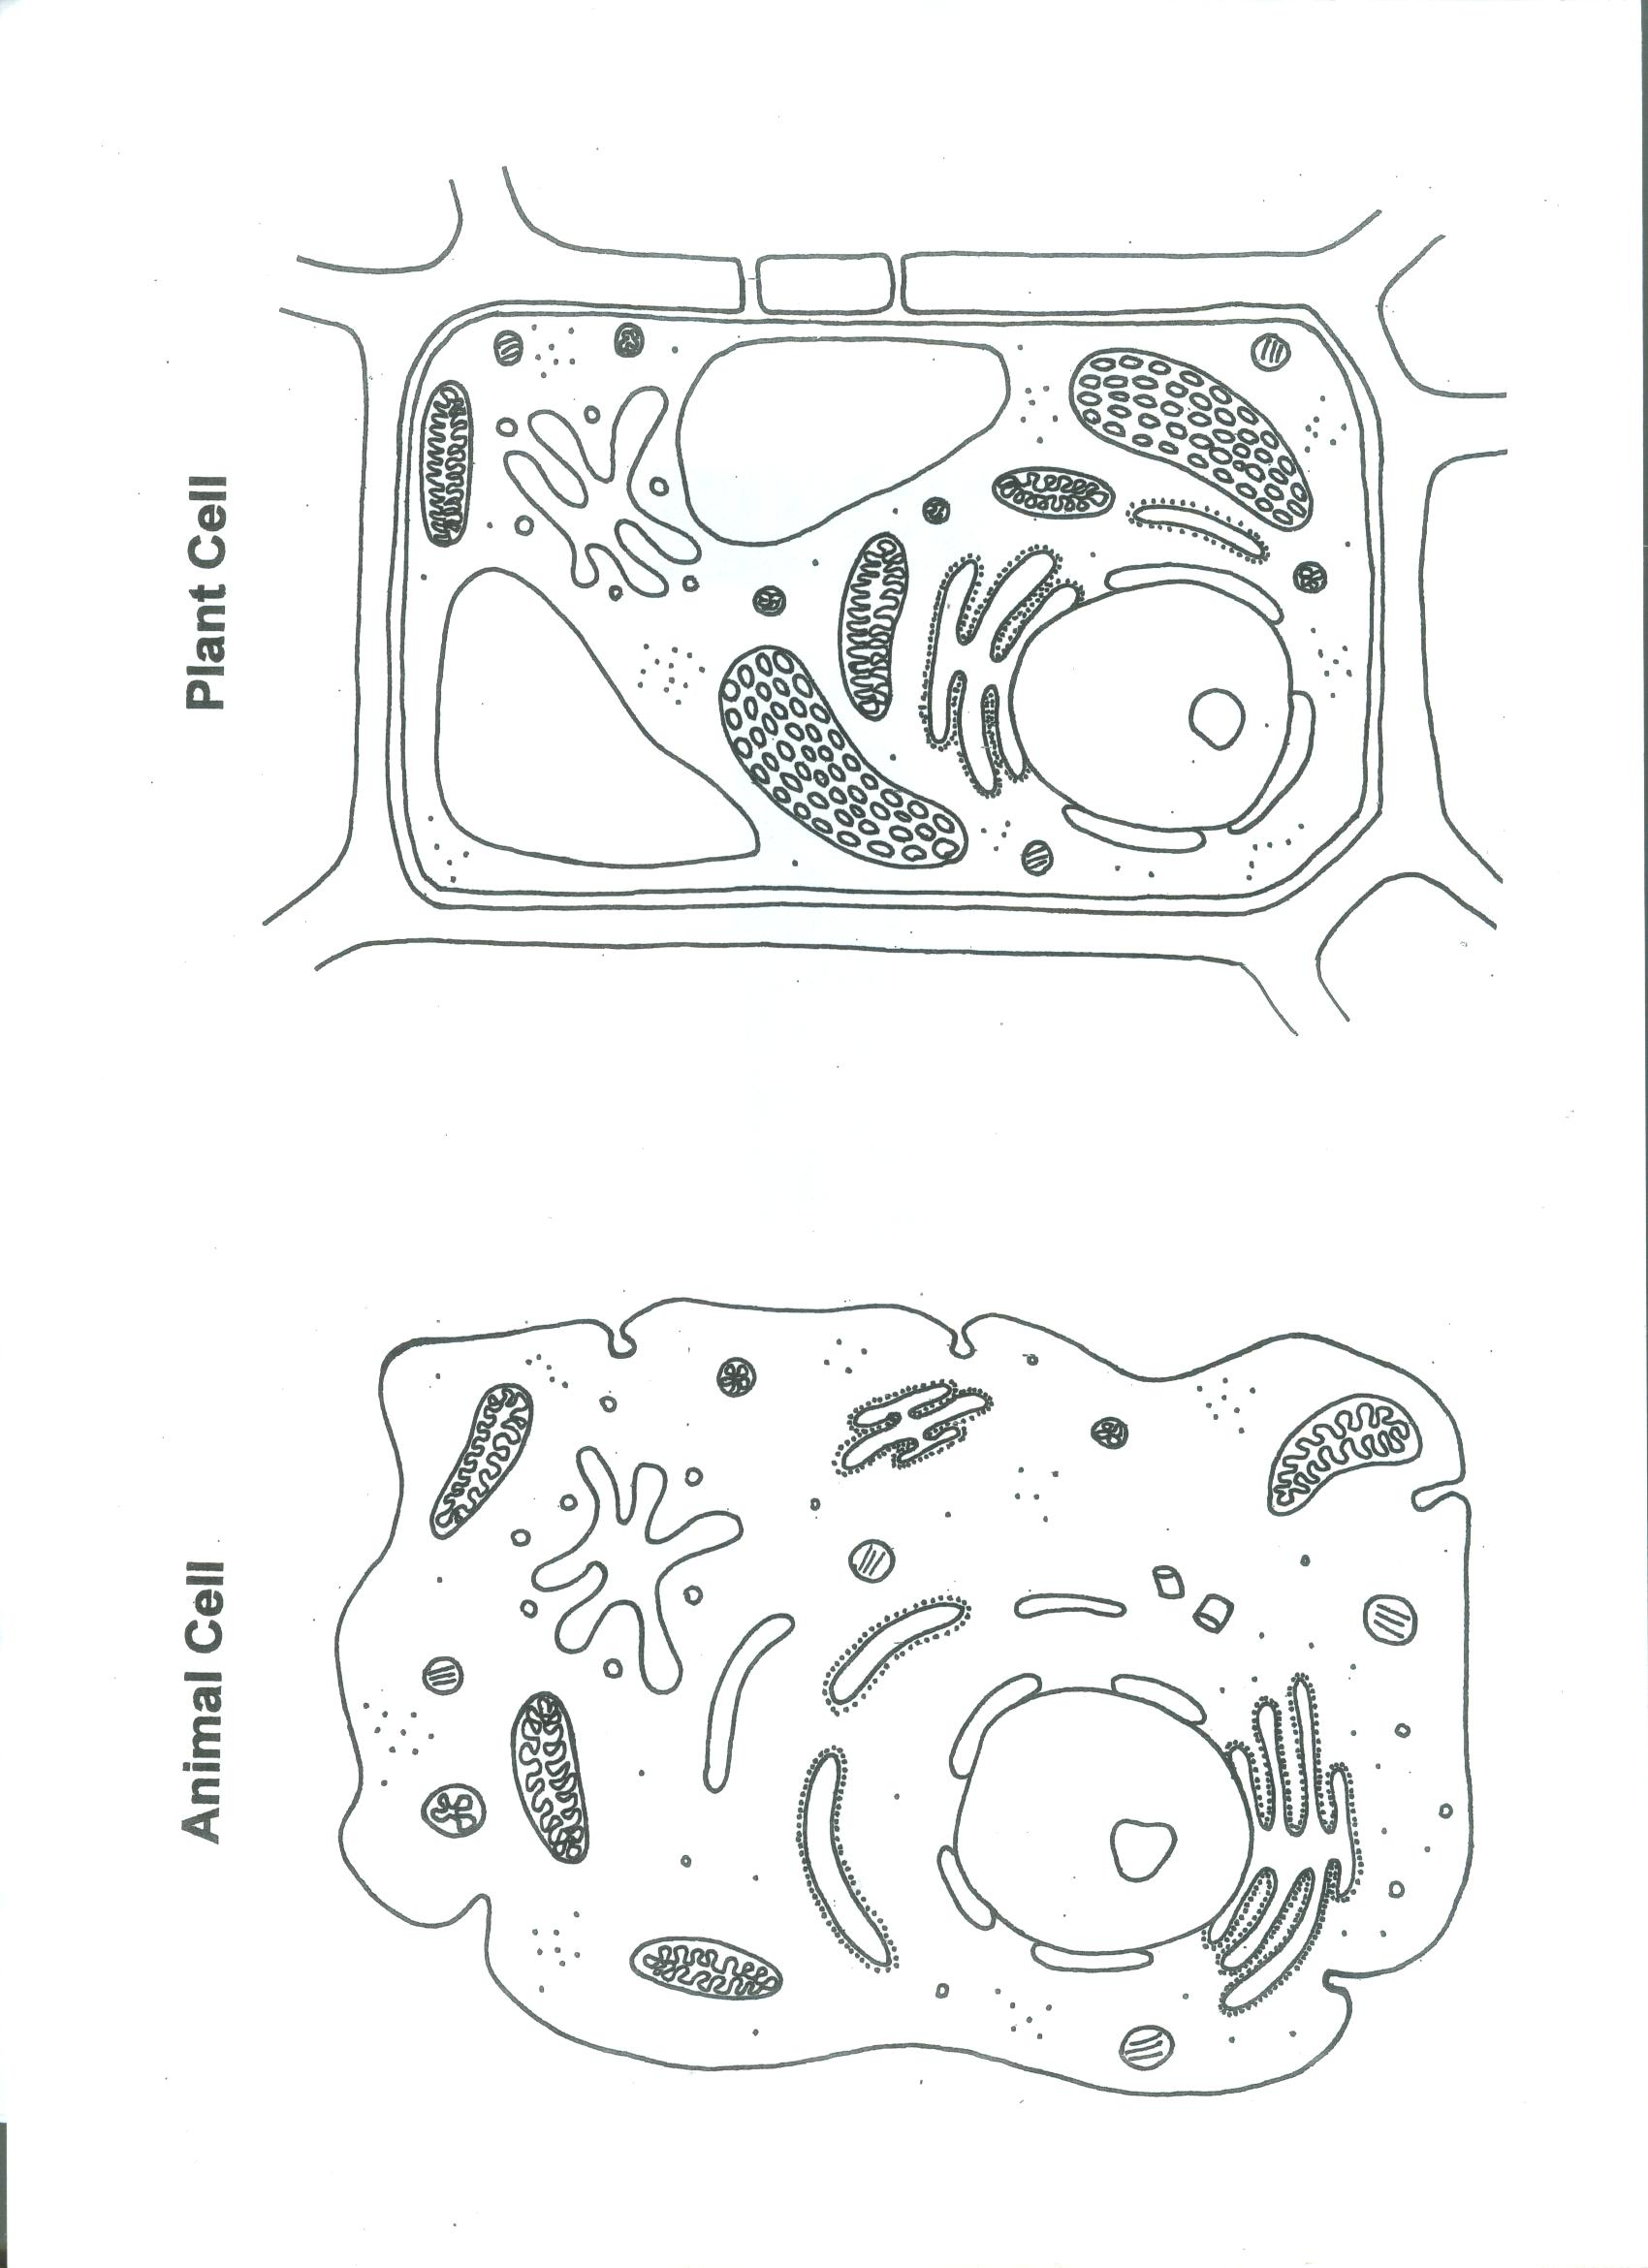 Plant And Animal Cell Color Worksheet 6 Animal And Plant Cell – Plant and Animal Cell Diagram Worksheet